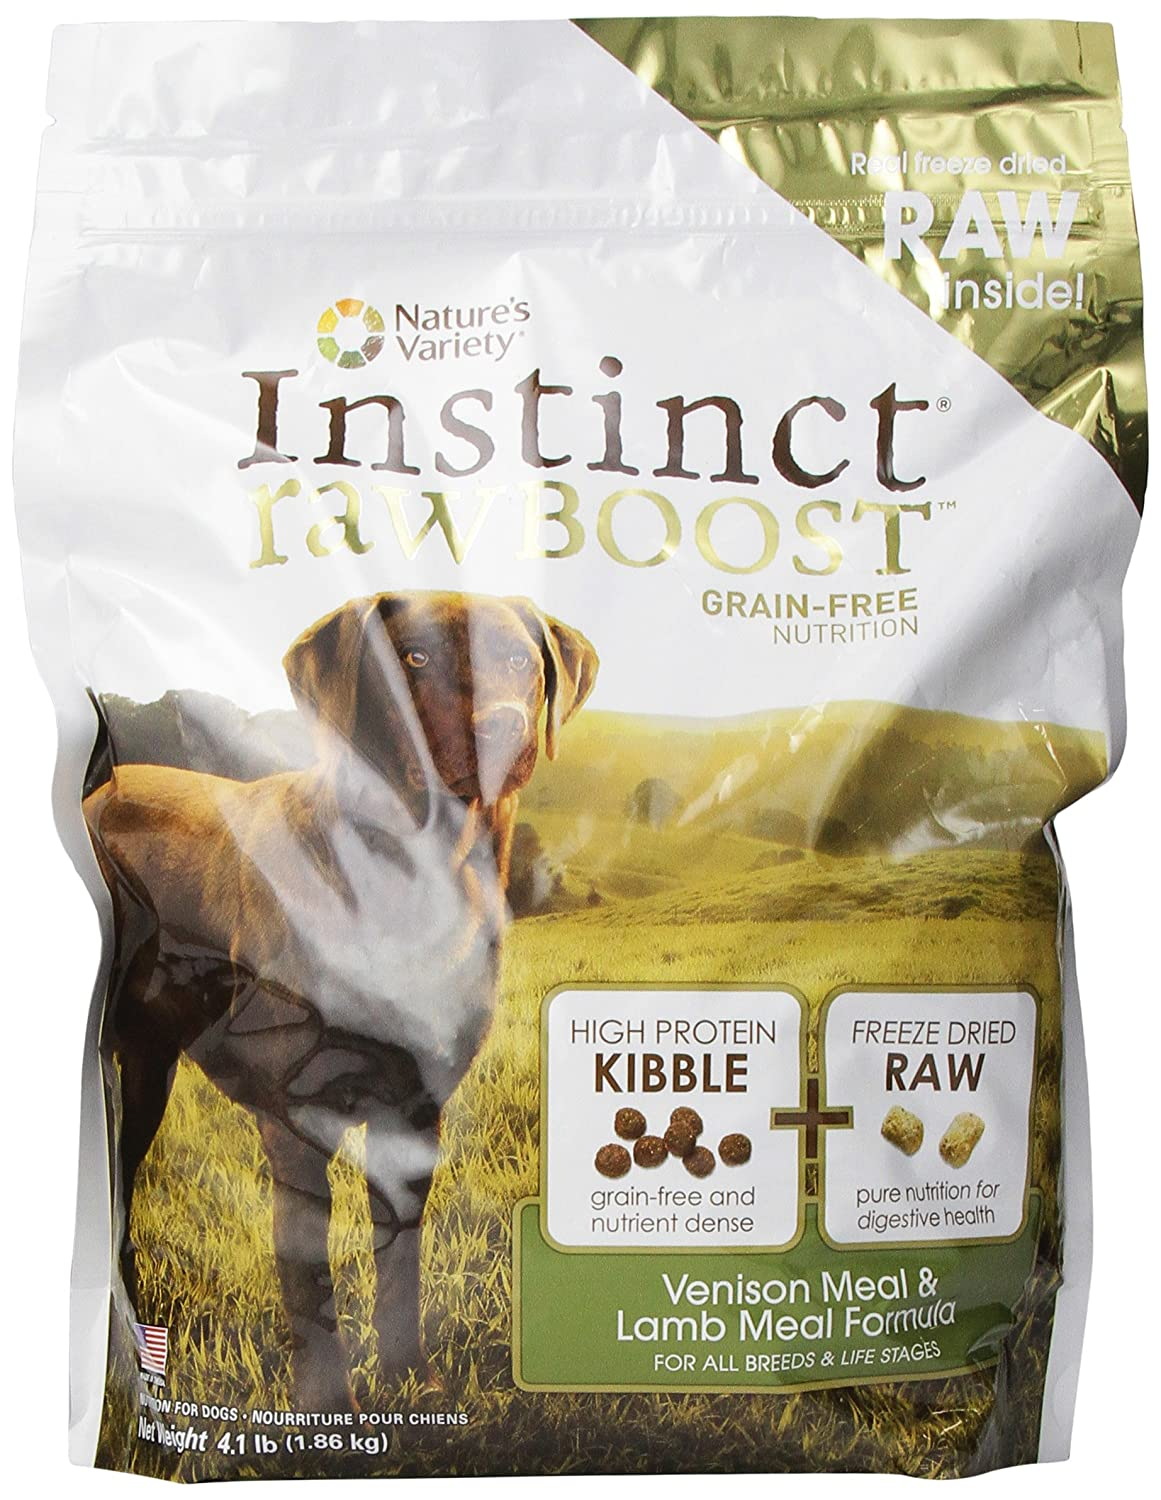 Instinct Raw Boost Grain-Free Venison Meal Lamb Meal Formula Dry Dog Food By Nature S Variety, 4.1-Pound Bag